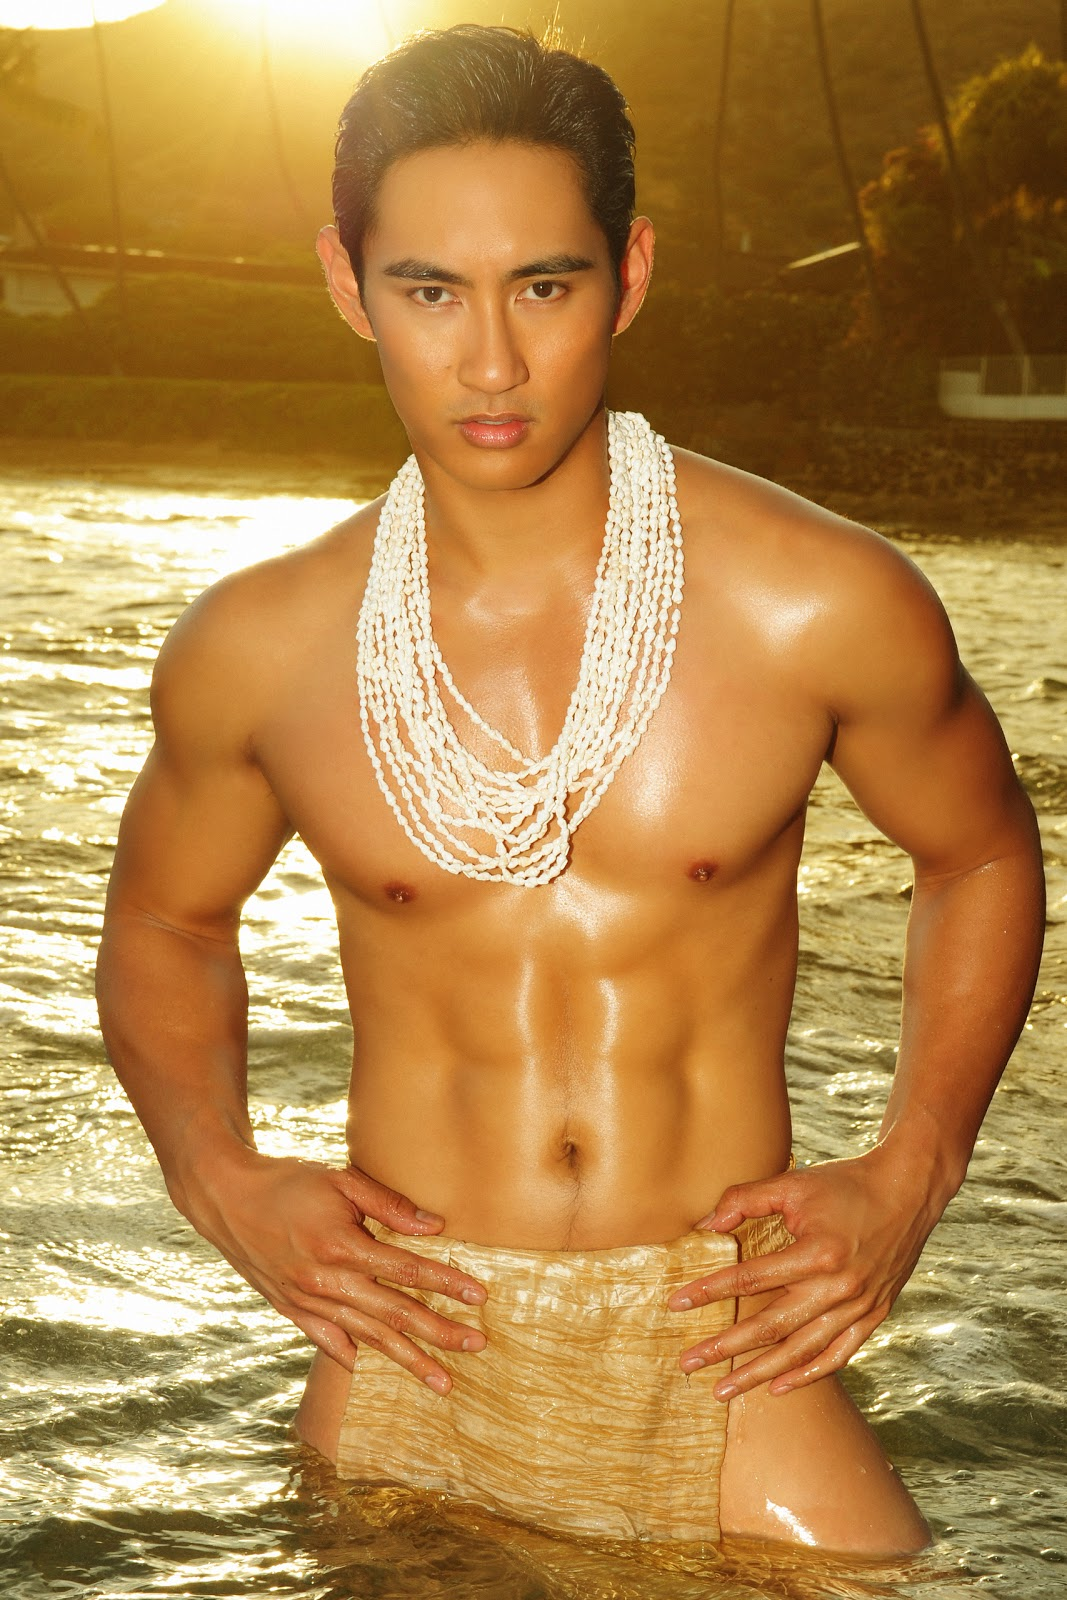 Mister Hawaii Universe Model 2012 Rhonee Rojas